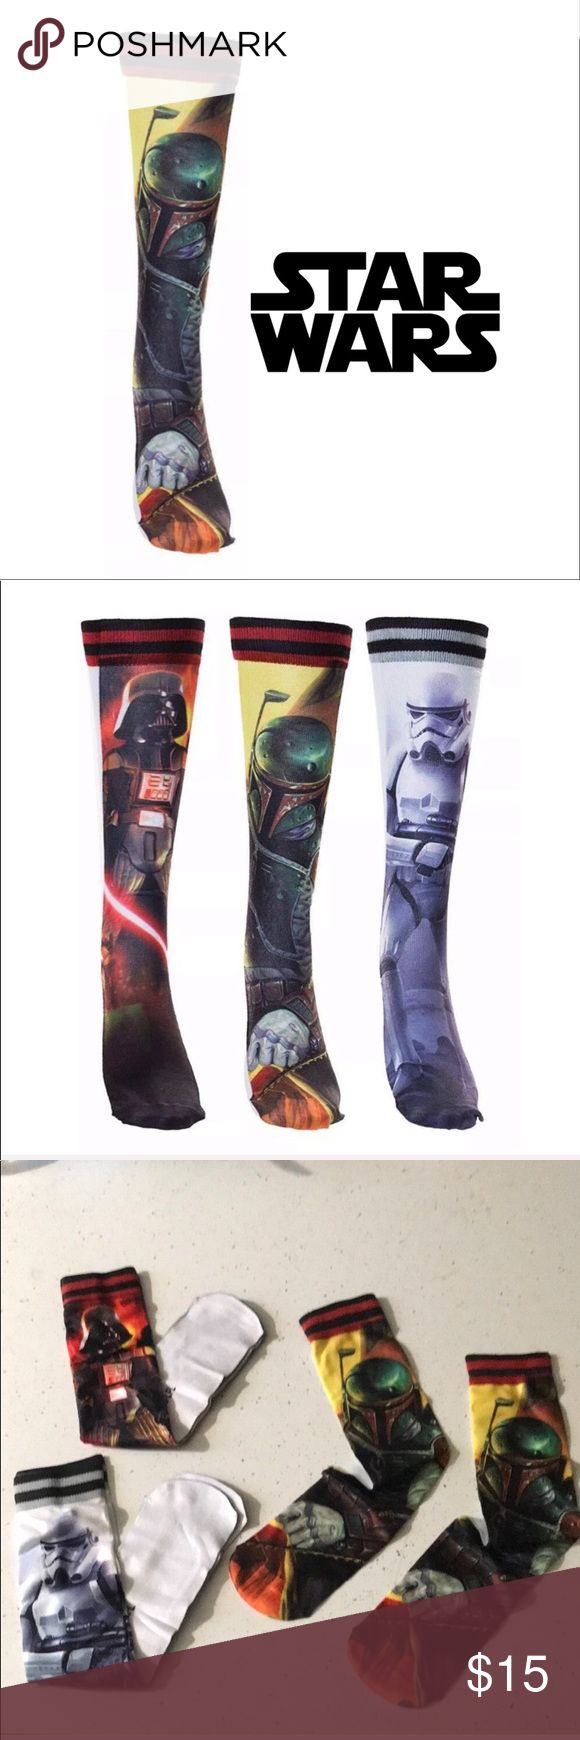 Star Wars Boba Fett Pair of Socks This officially licensed Star Wars of sublimated socks features Boba Fett.  Also available in Darth Vader, Storm Tro…